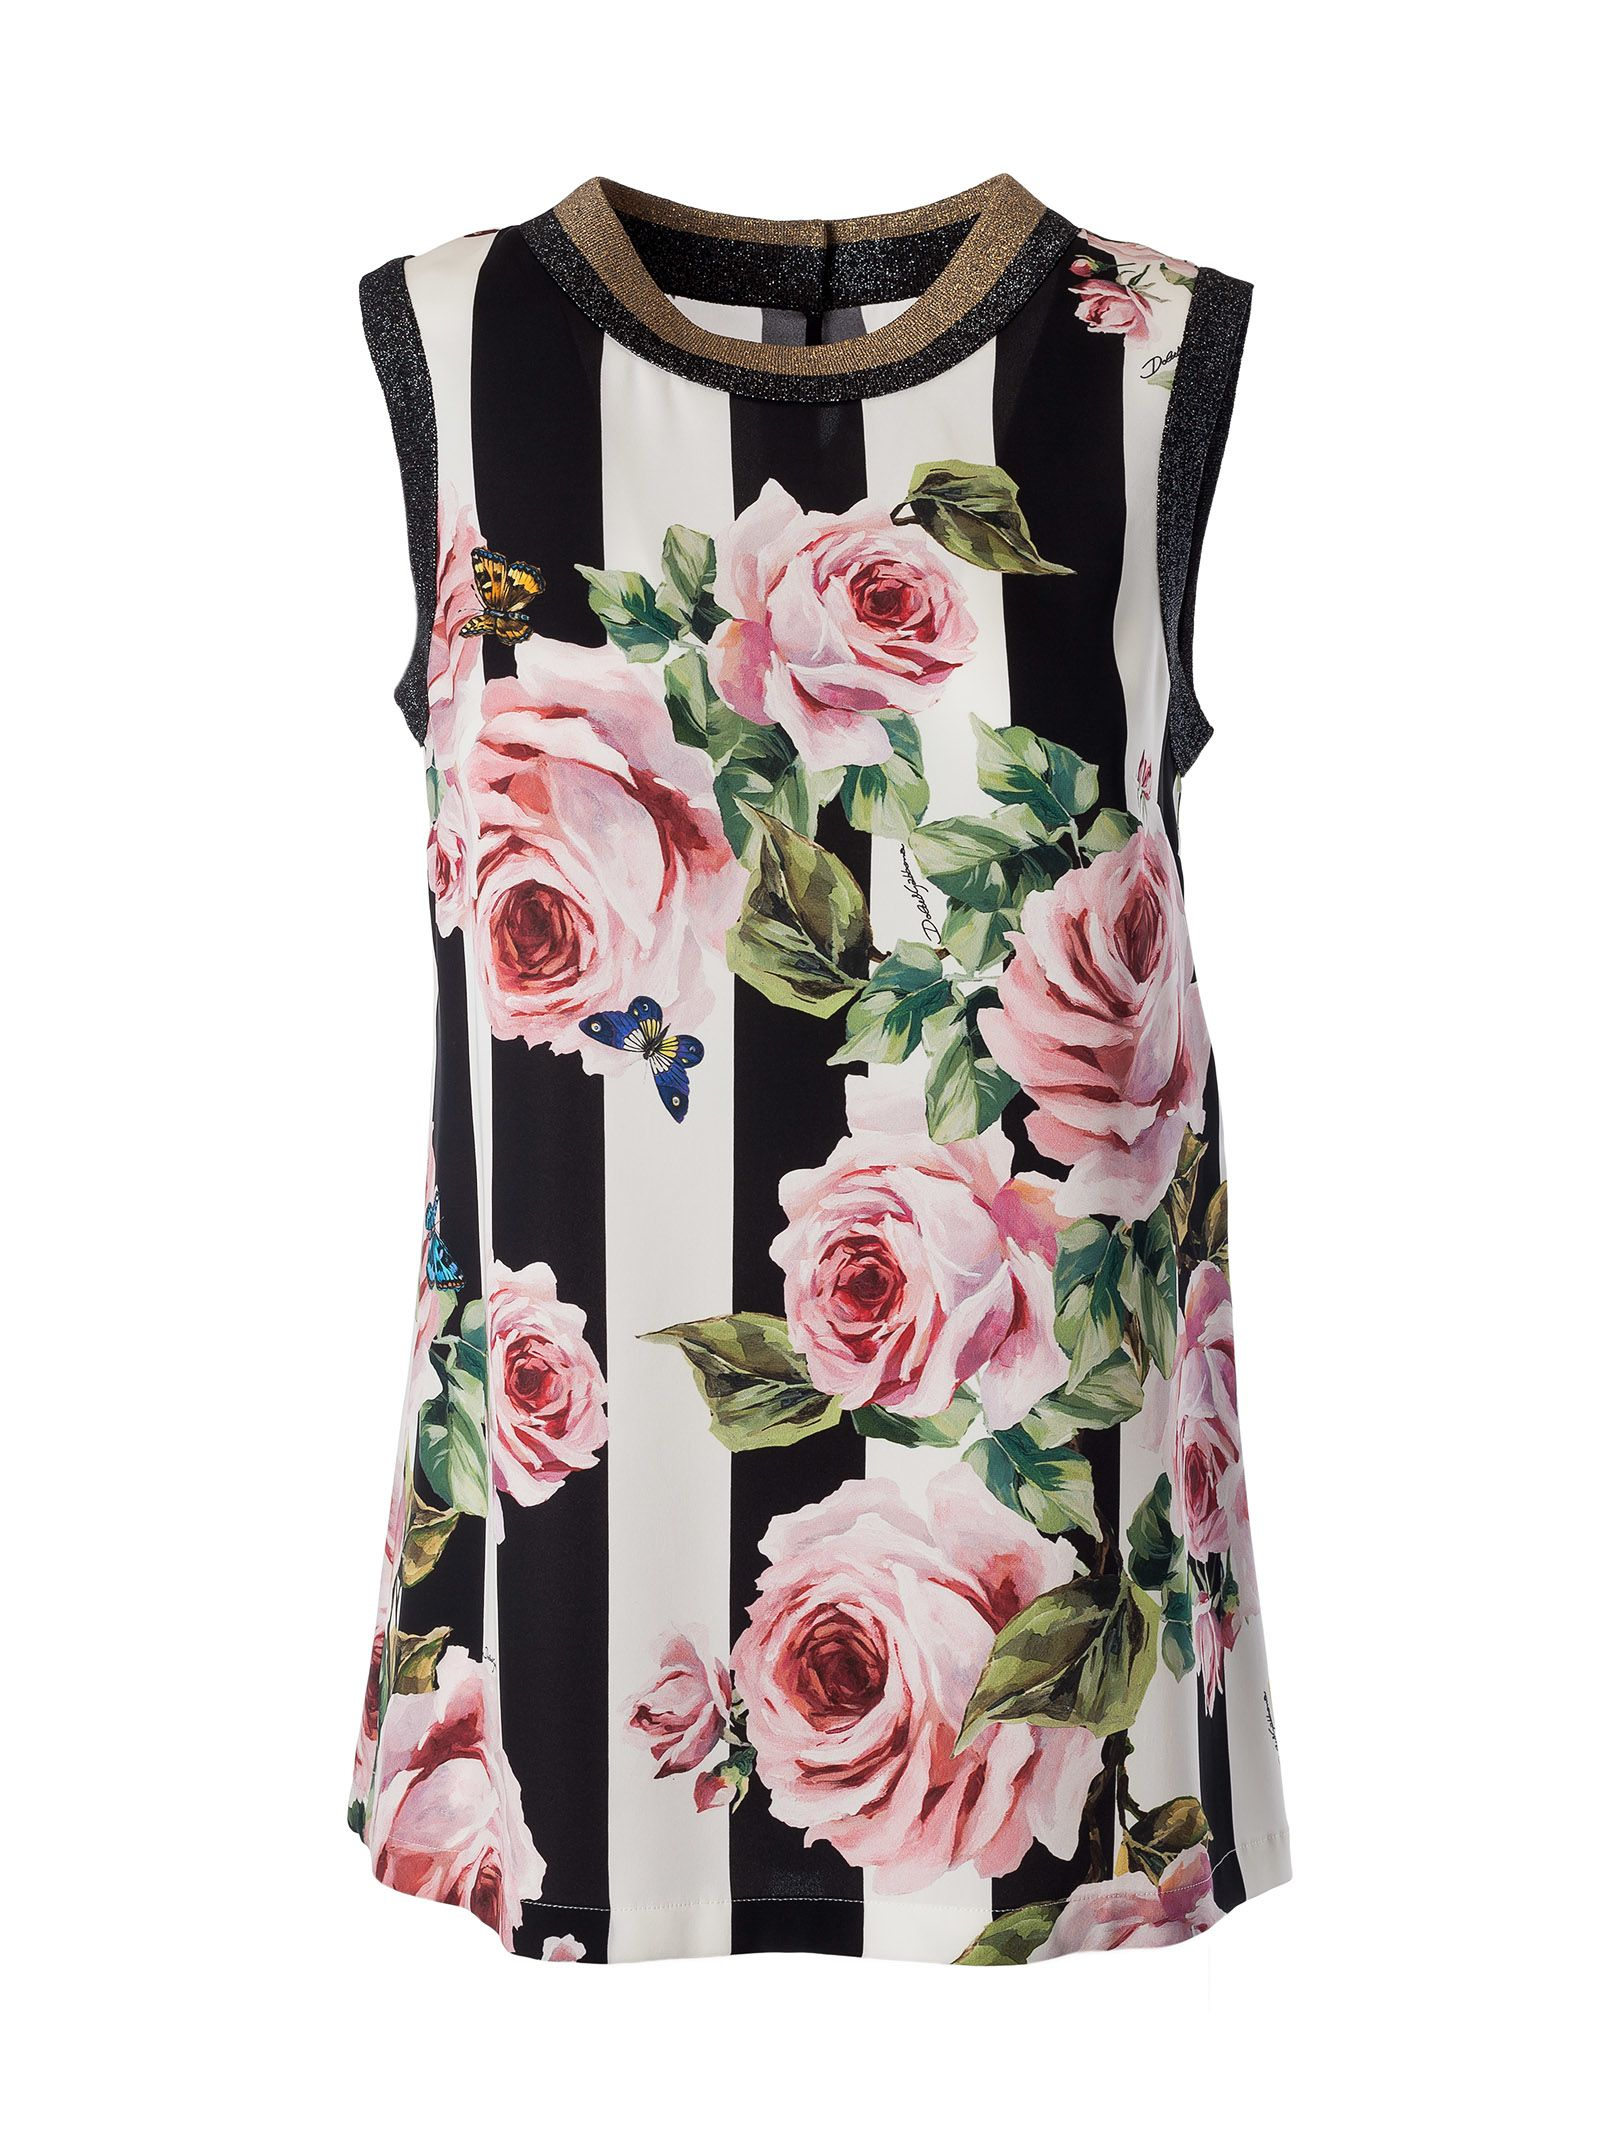 Dolce & Gabbana Striped Rose Tank Top